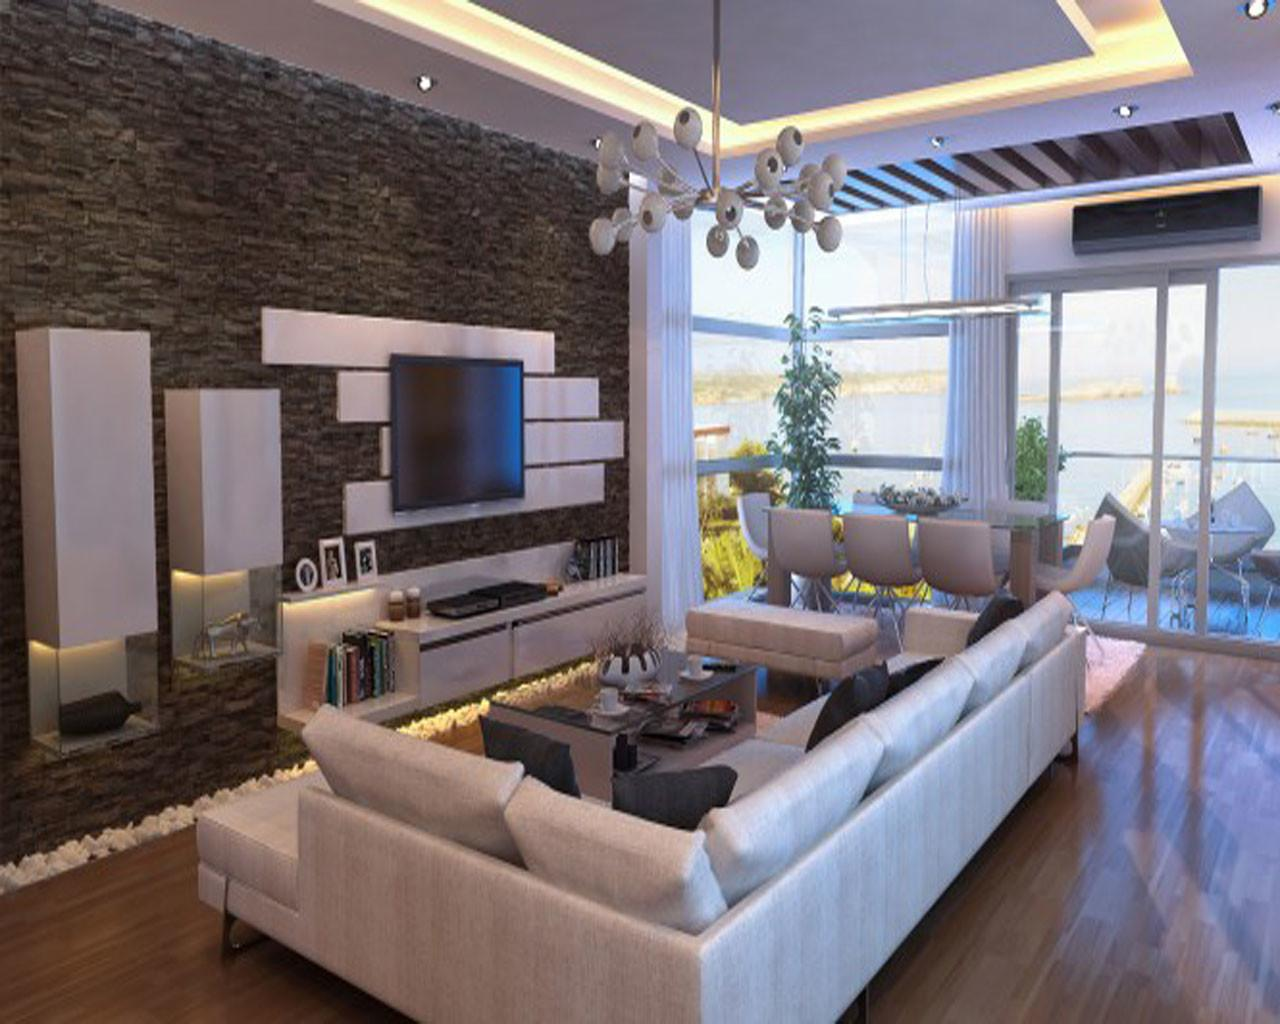 41 Genius Living Room Decor Milan 2018 That You Should Know Trends For 2021 Photographs Decoratorist